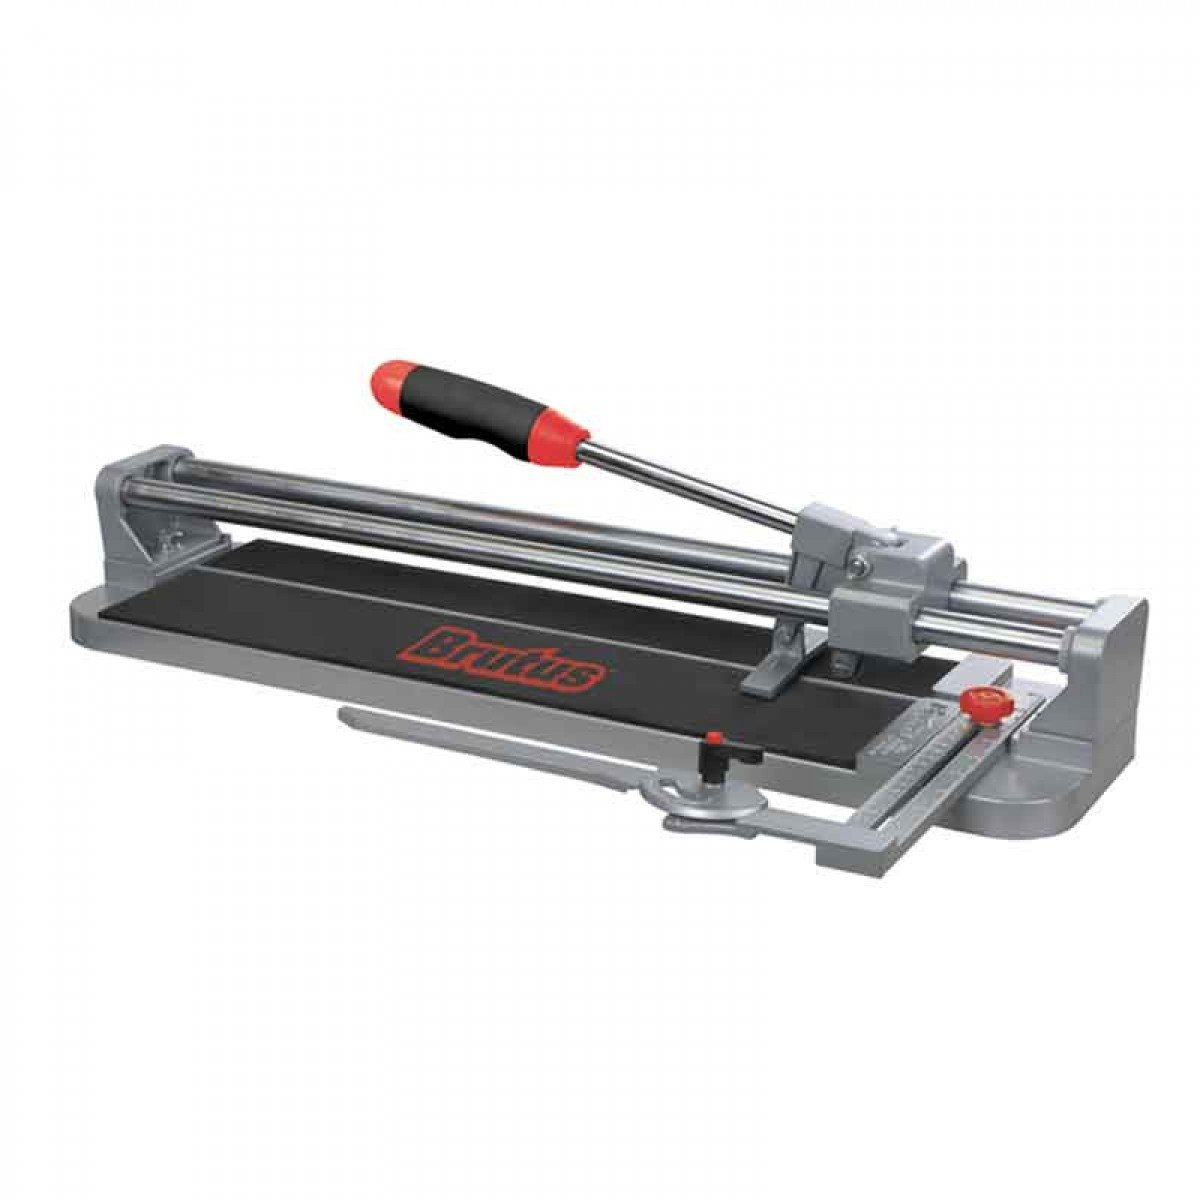 qep tile cutter instructions